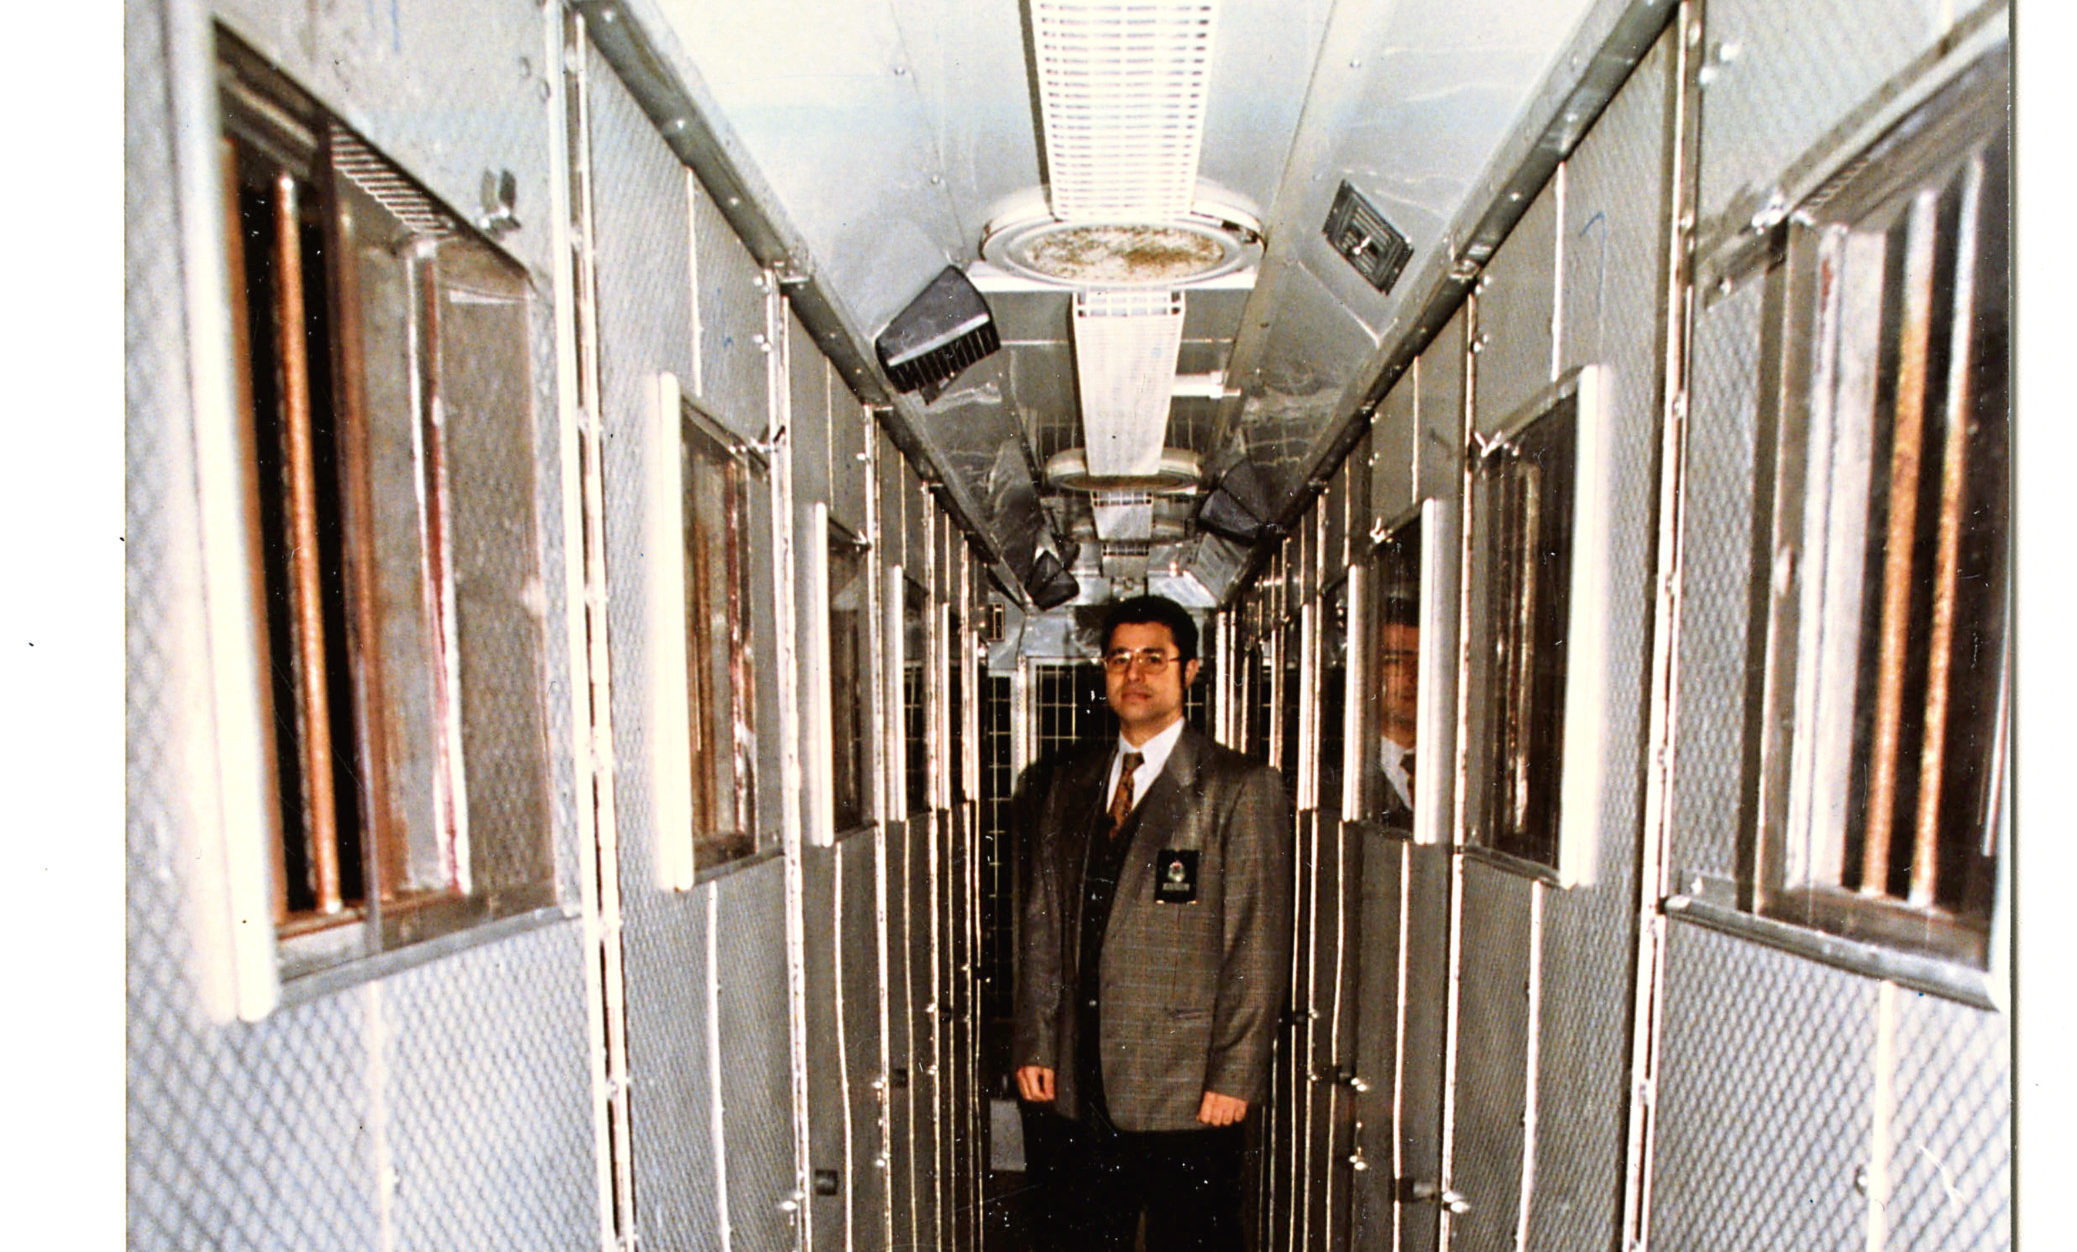 Mike Ahmed from Tayside Police poses inside the 'Jail bus' in 1997